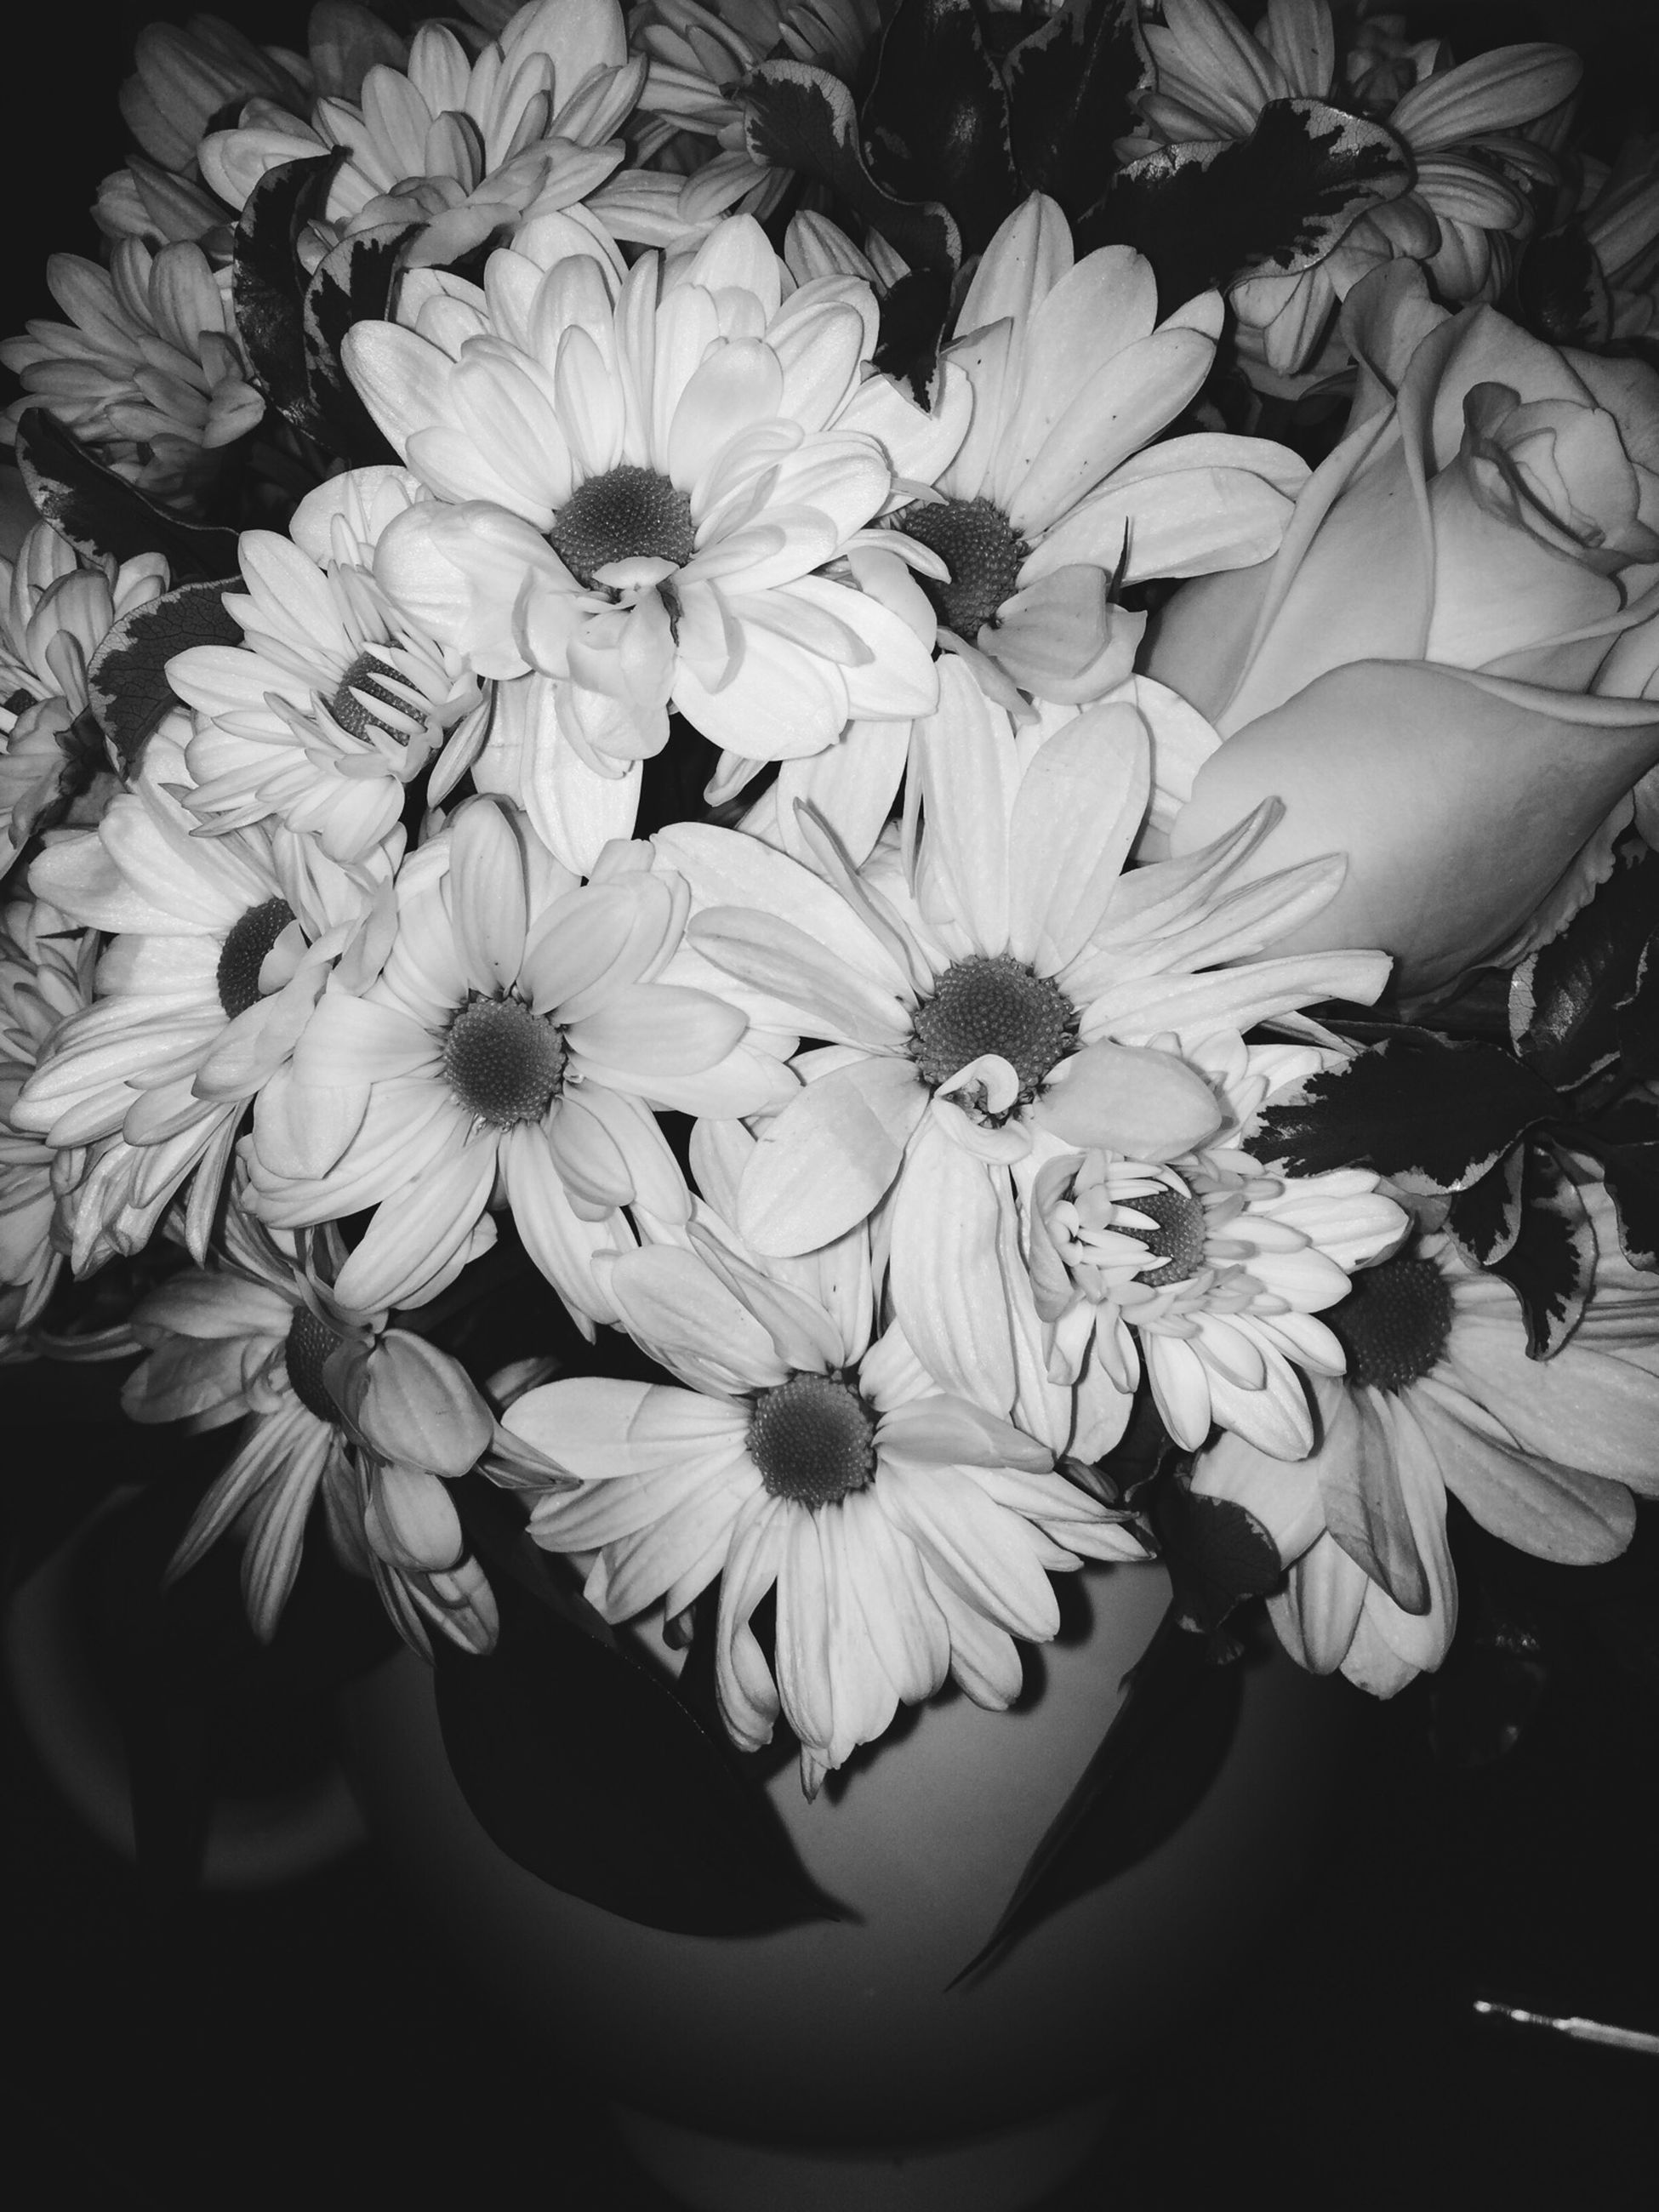 flower, petal, freshness, flower head, fragility, growth, beauty in nature, close-up, blooming, plant, white color, nature, indoors, blossom, in bloom, high angle view, pollen, bunch of flowers, no people, botany